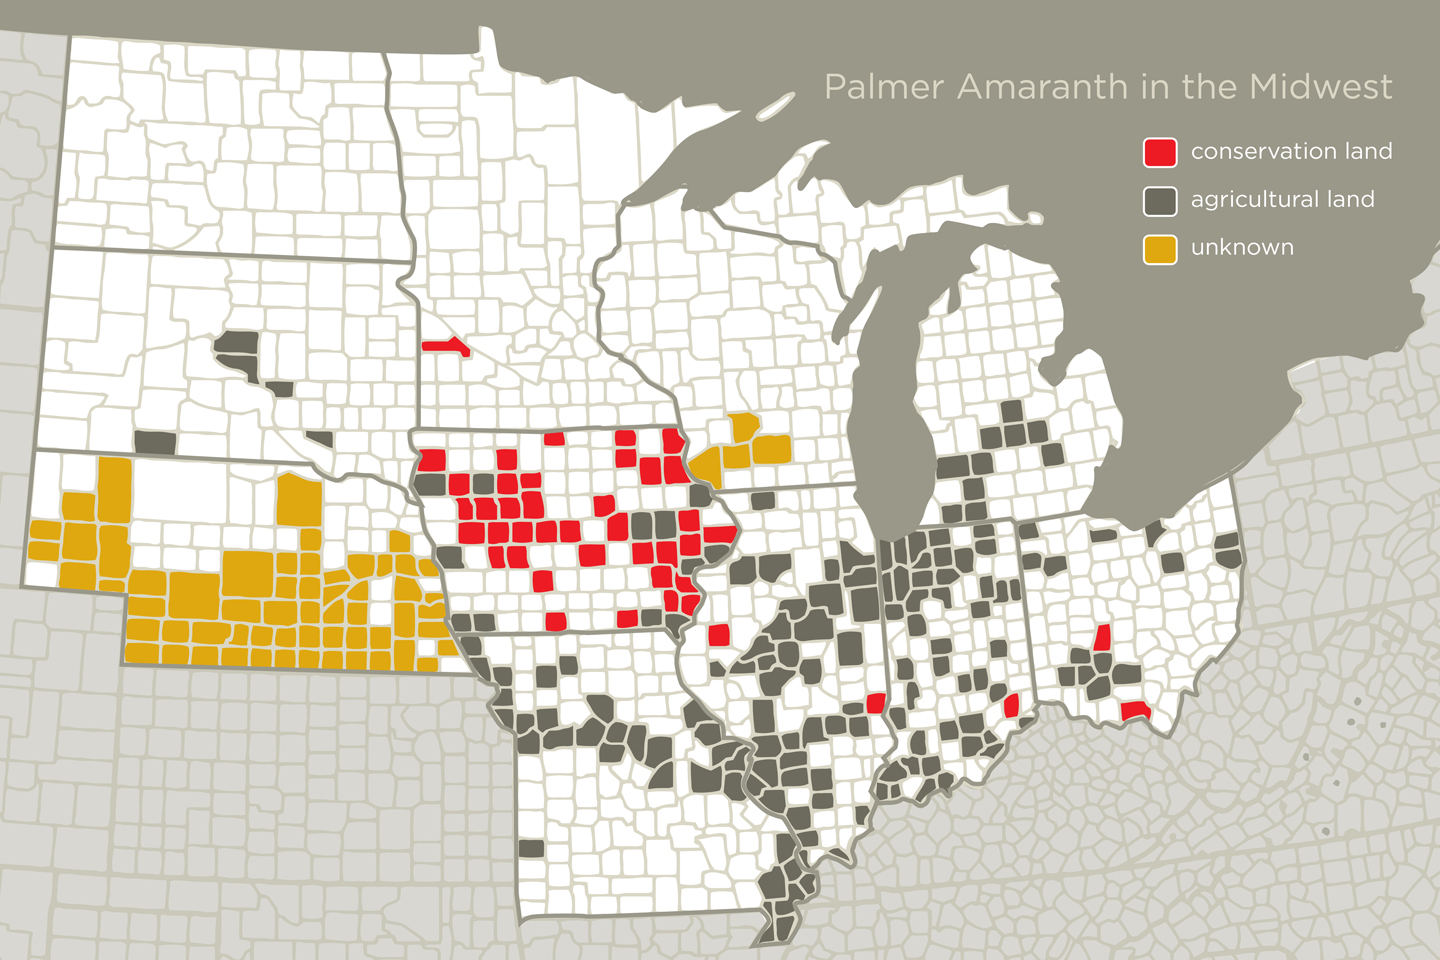 Bad Seeds Bring Palmer Amaranth to the Midwest